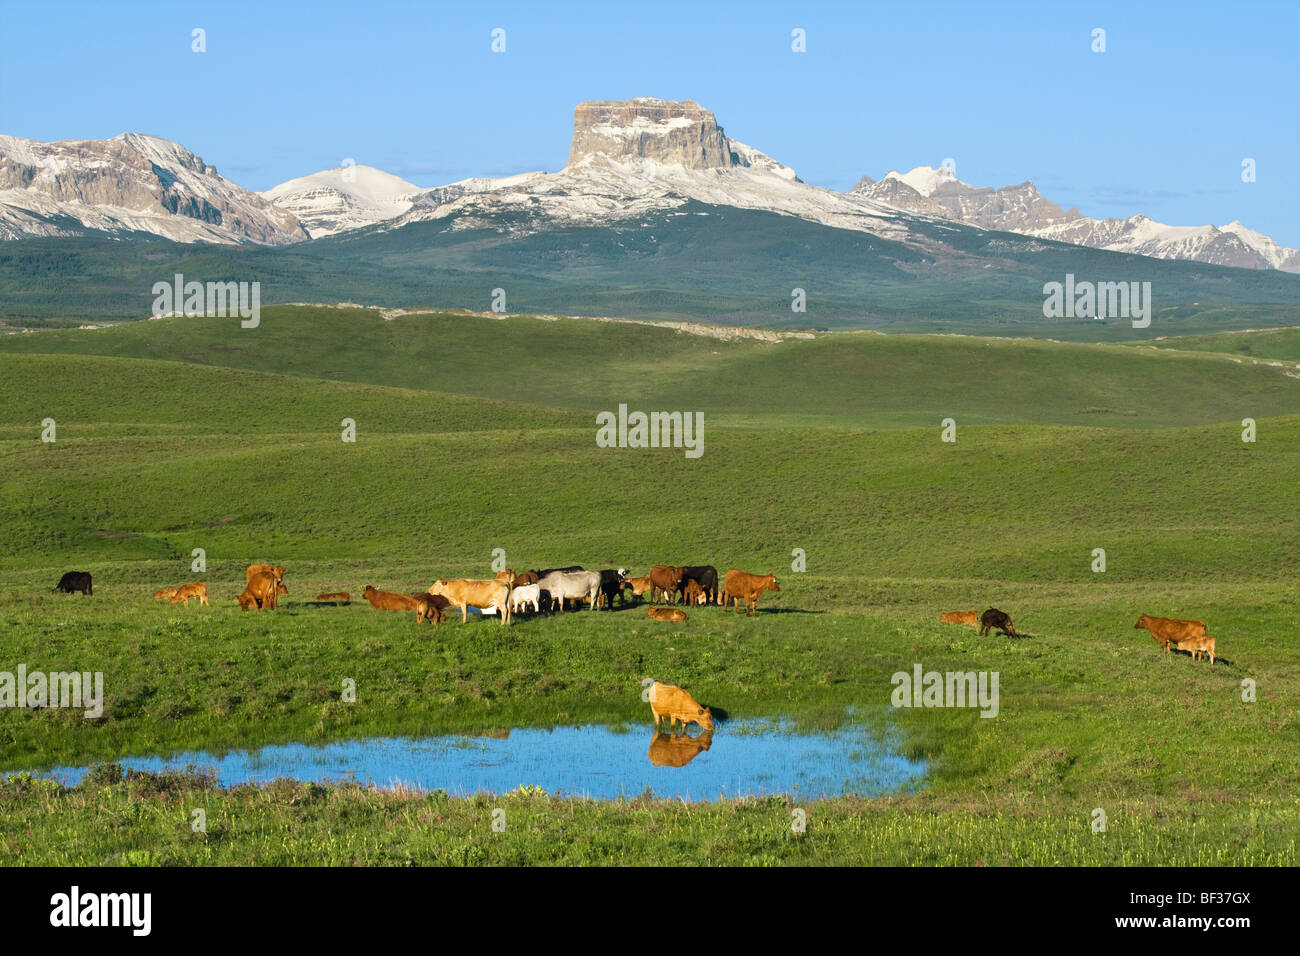 Mixed breeds of beef cows and calves assemble beside a pond after sunrise in a foothills pasture near Canadian Rockies - Stock Image